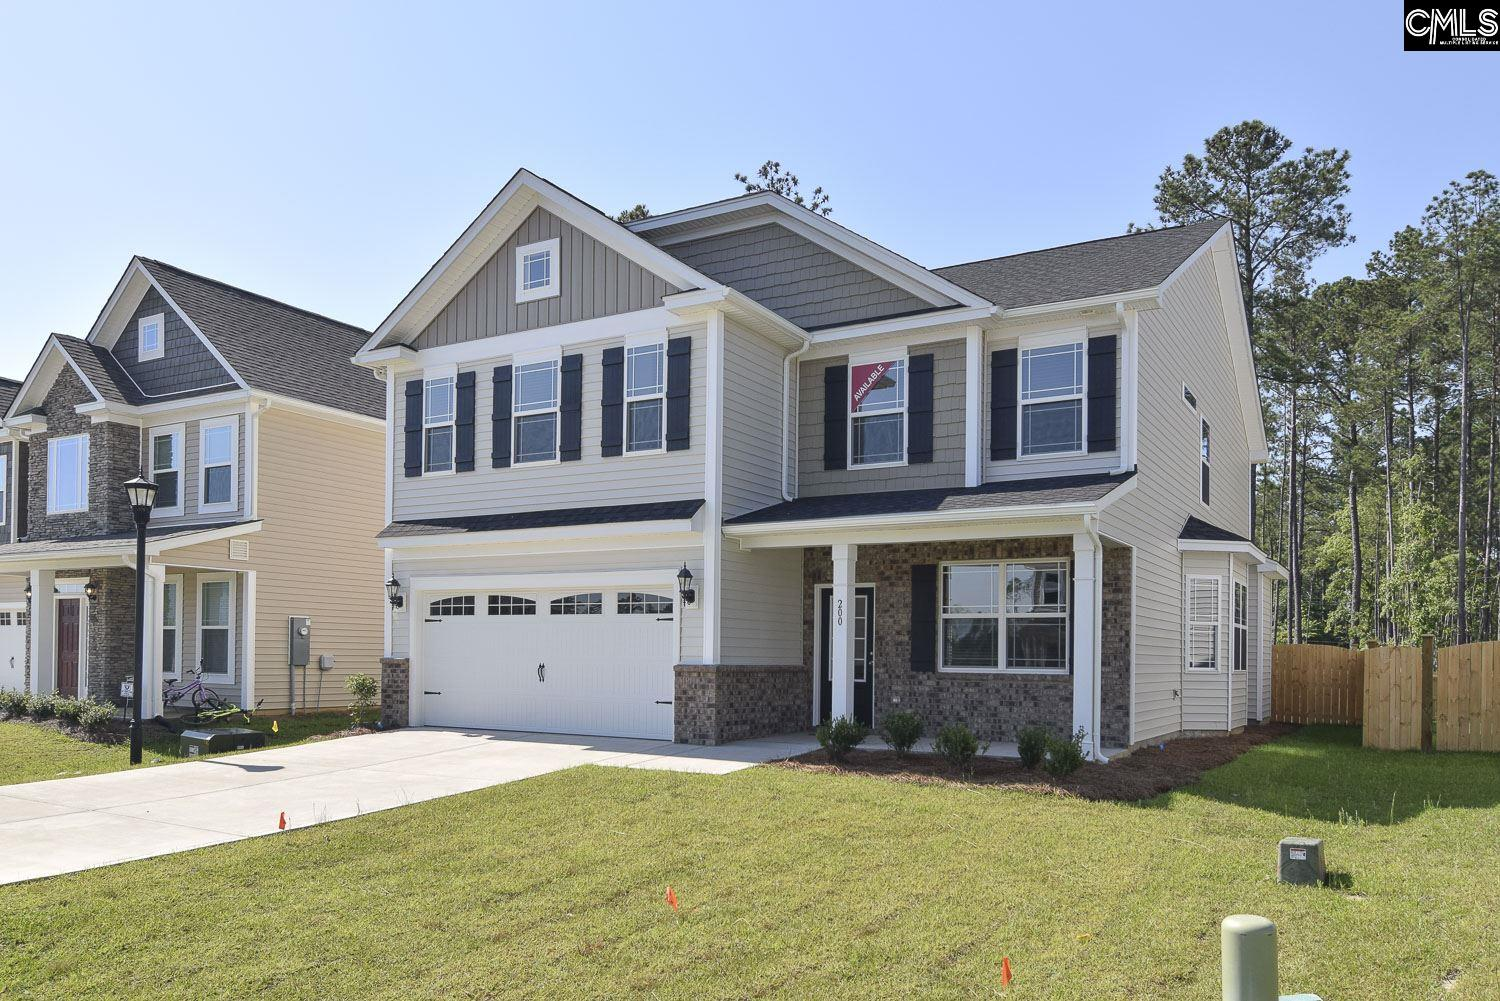 200 Coatbridge #28 Blythewood, SC 29016